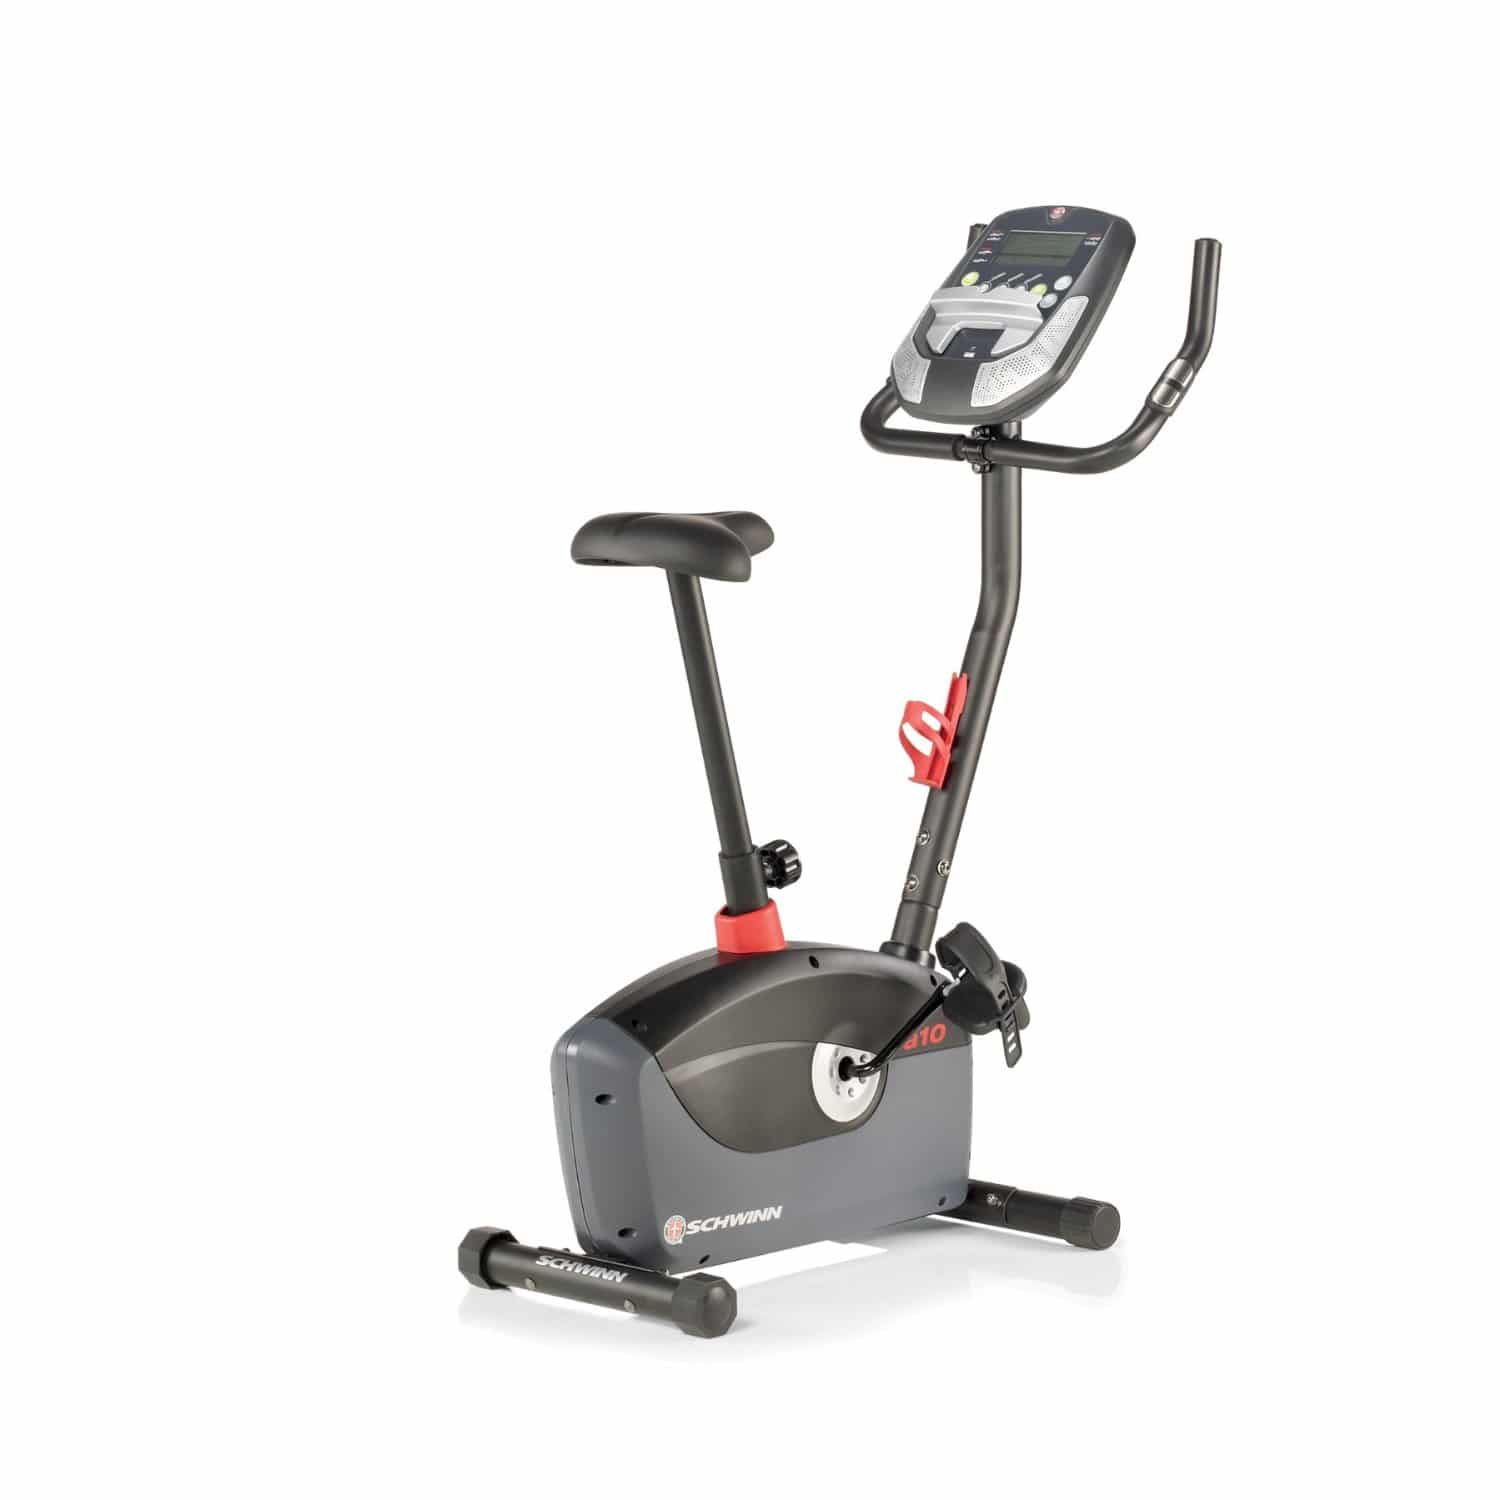 Schwinn Exercise Bike Scwinn A10 Upright Bike Reviewed